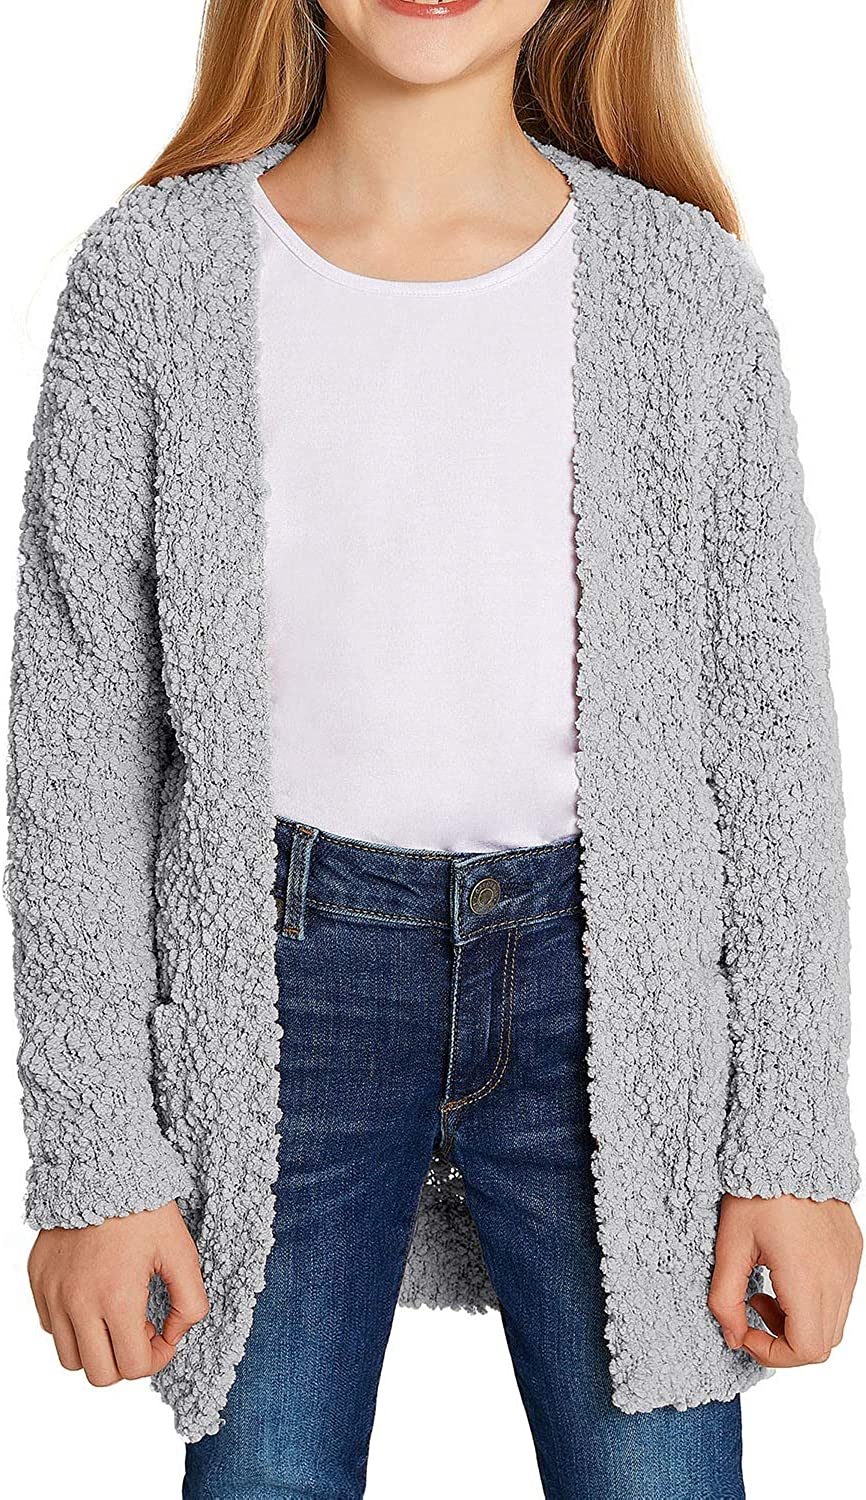 GRAPENT Girls Open Front quality assurance Long Cardigan Ou Max 83% OFF Sweater Sleeve Pockets